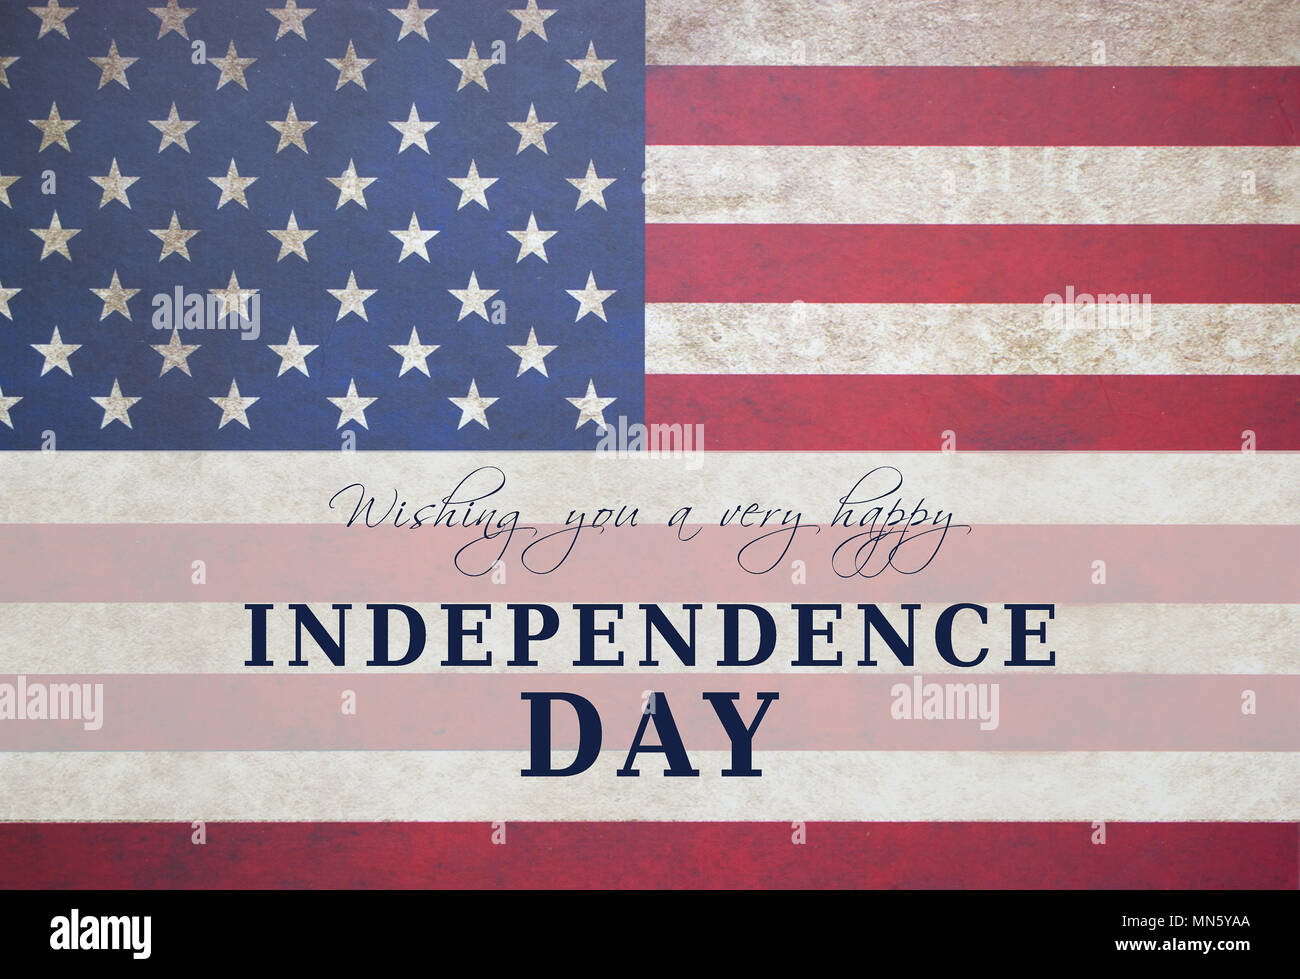 d3af3e175d1b44 Independence day text card. American flag background with stars and  stripes.The Fourth of